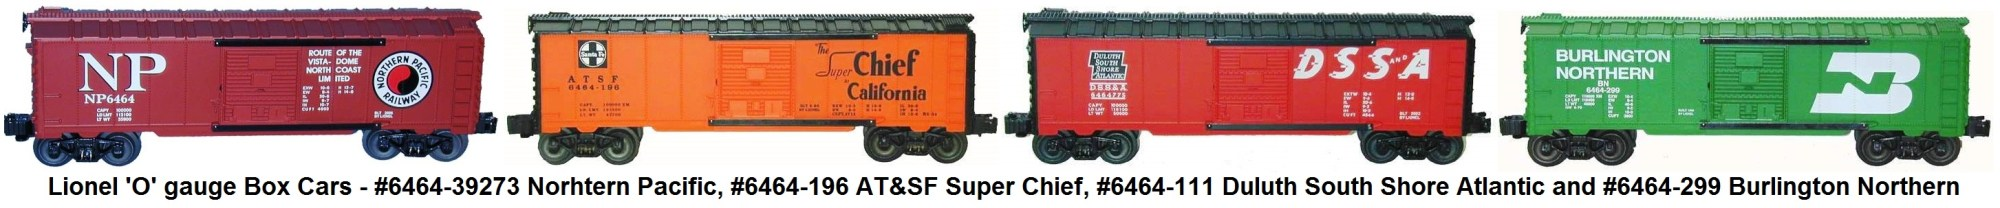 hight resolution of  lionel o gauge 6464 39273 northern pacific